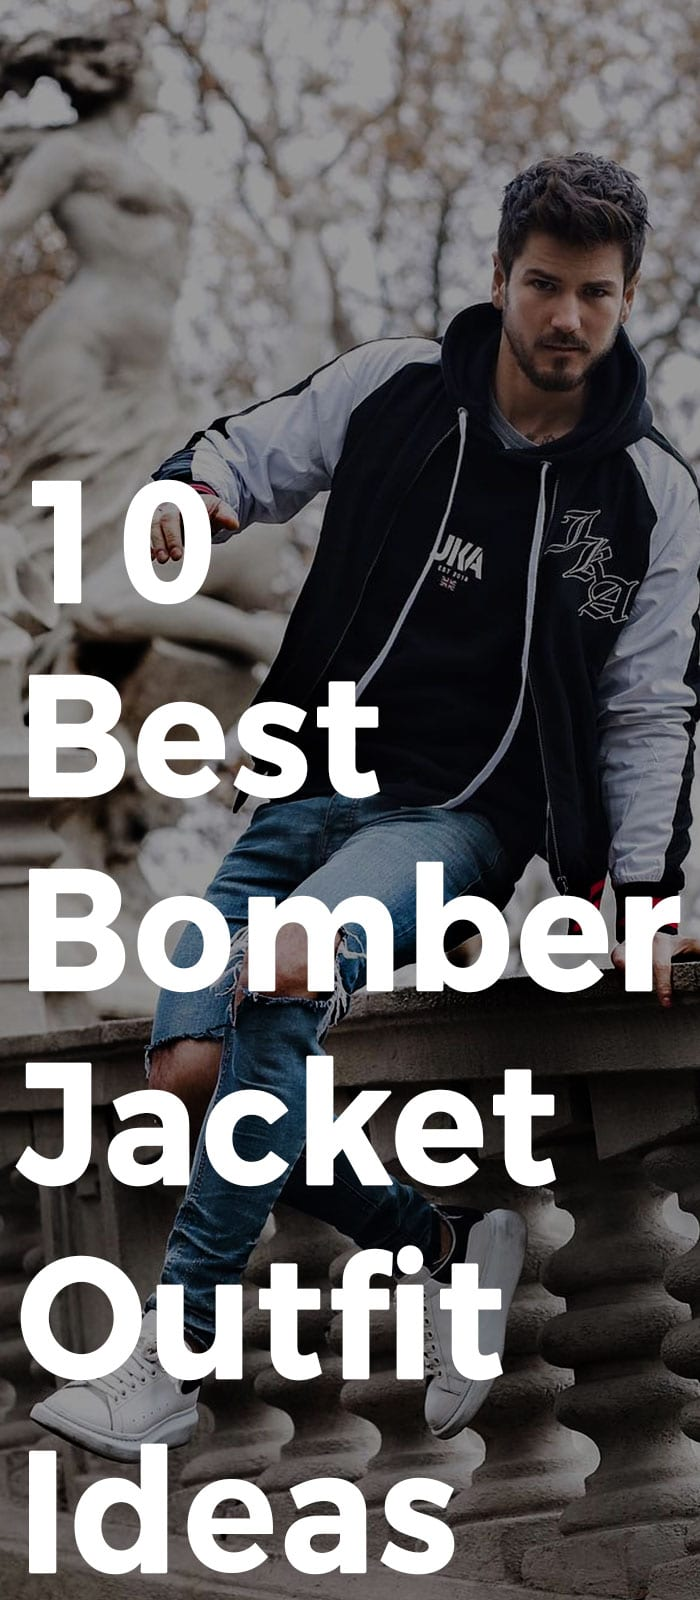 10 Best Bomber Jacket Outfit Ideas.